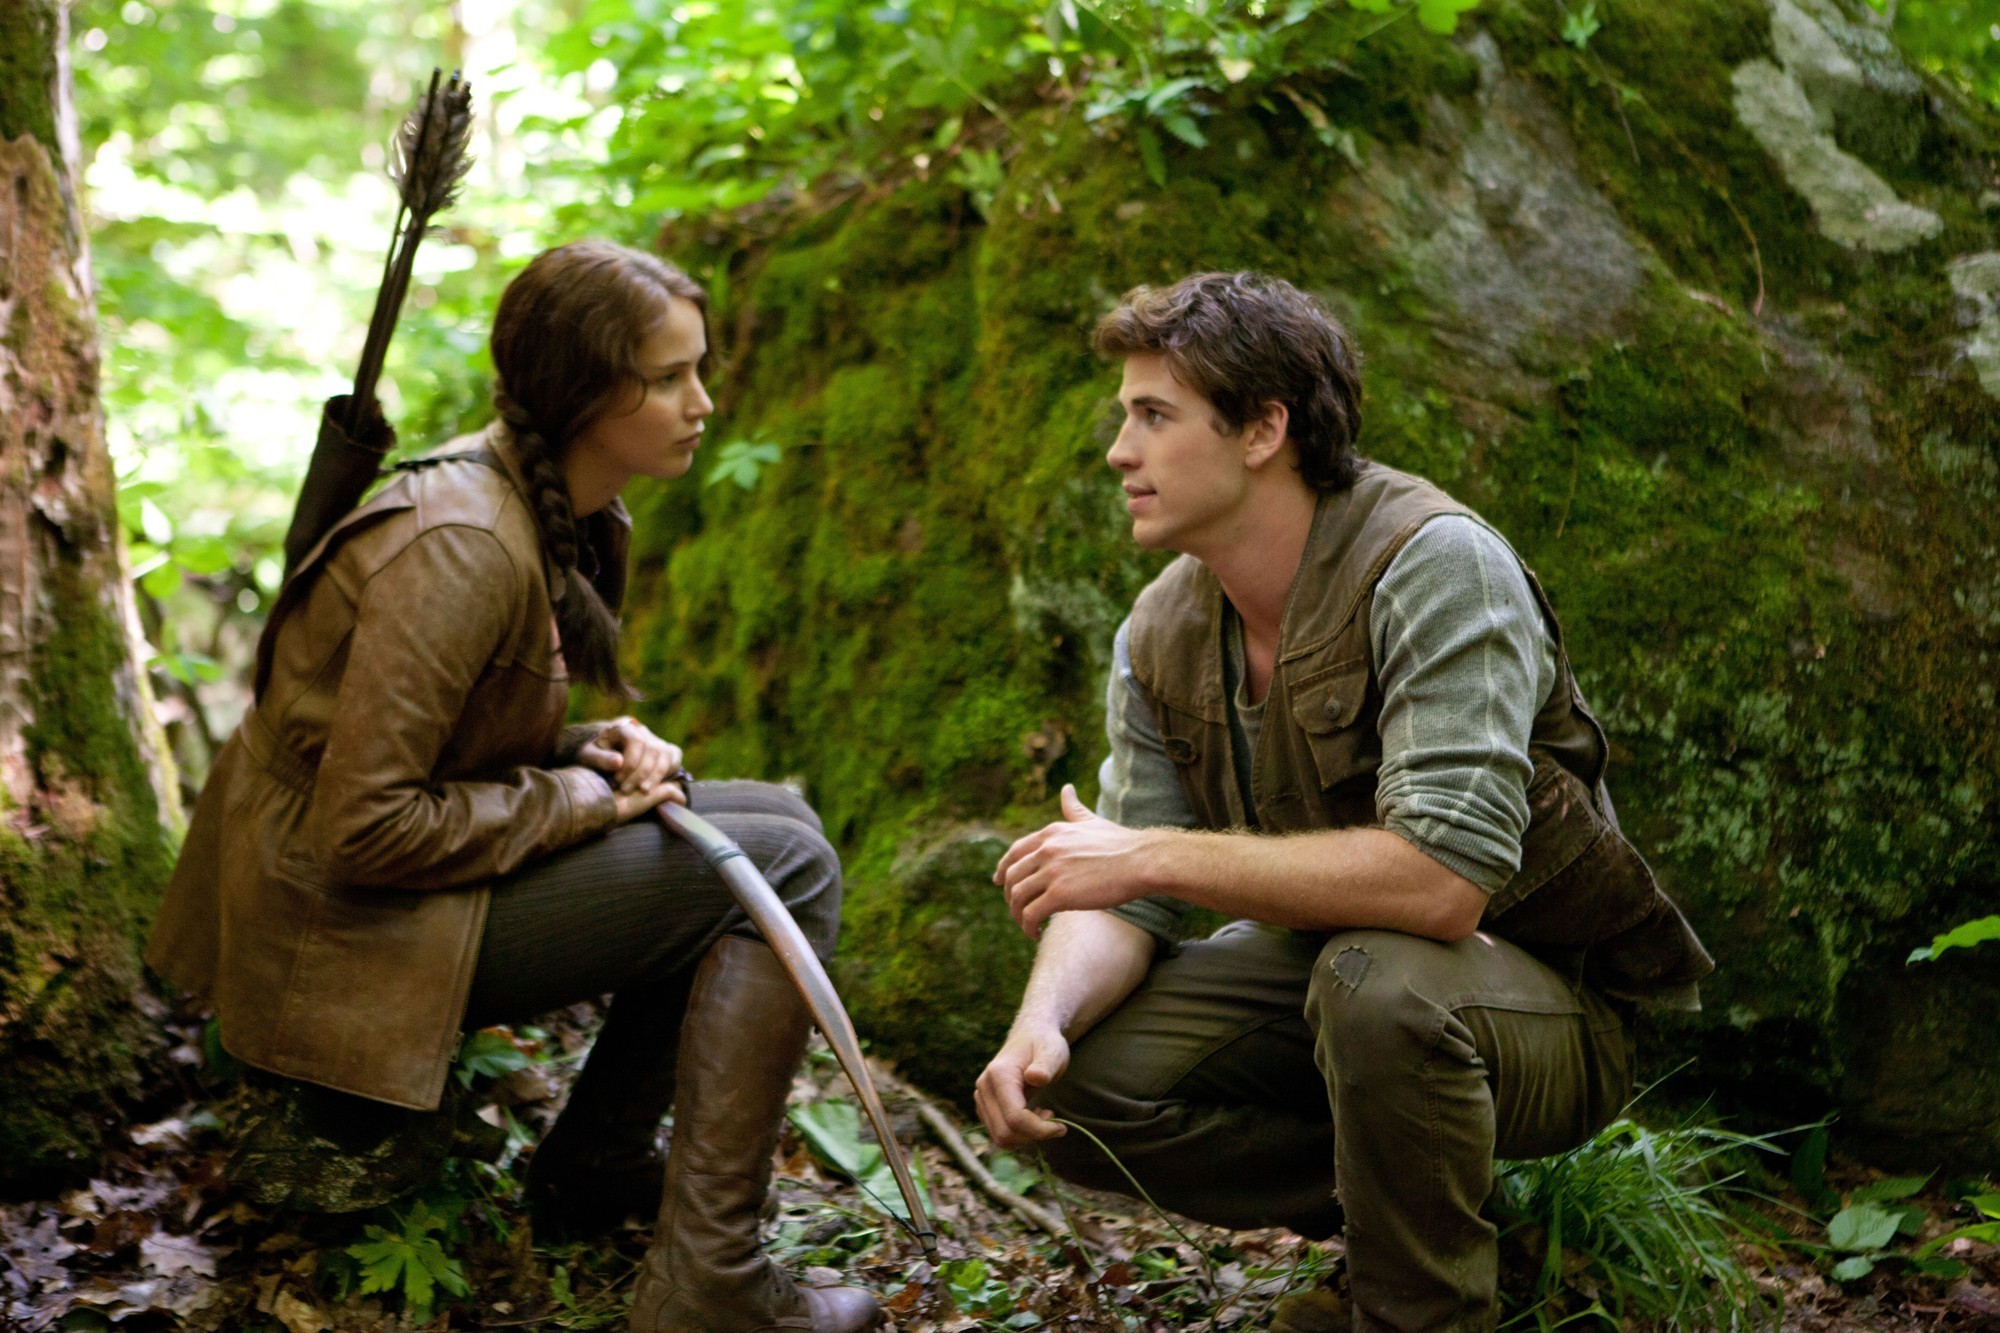 Jennifer-Lawrence-stars-as-Katniss-Everdeen-and-Liam-Hemsworth-stars-as-Gale-Hawthorne-in-The-Hunger-Games-2012